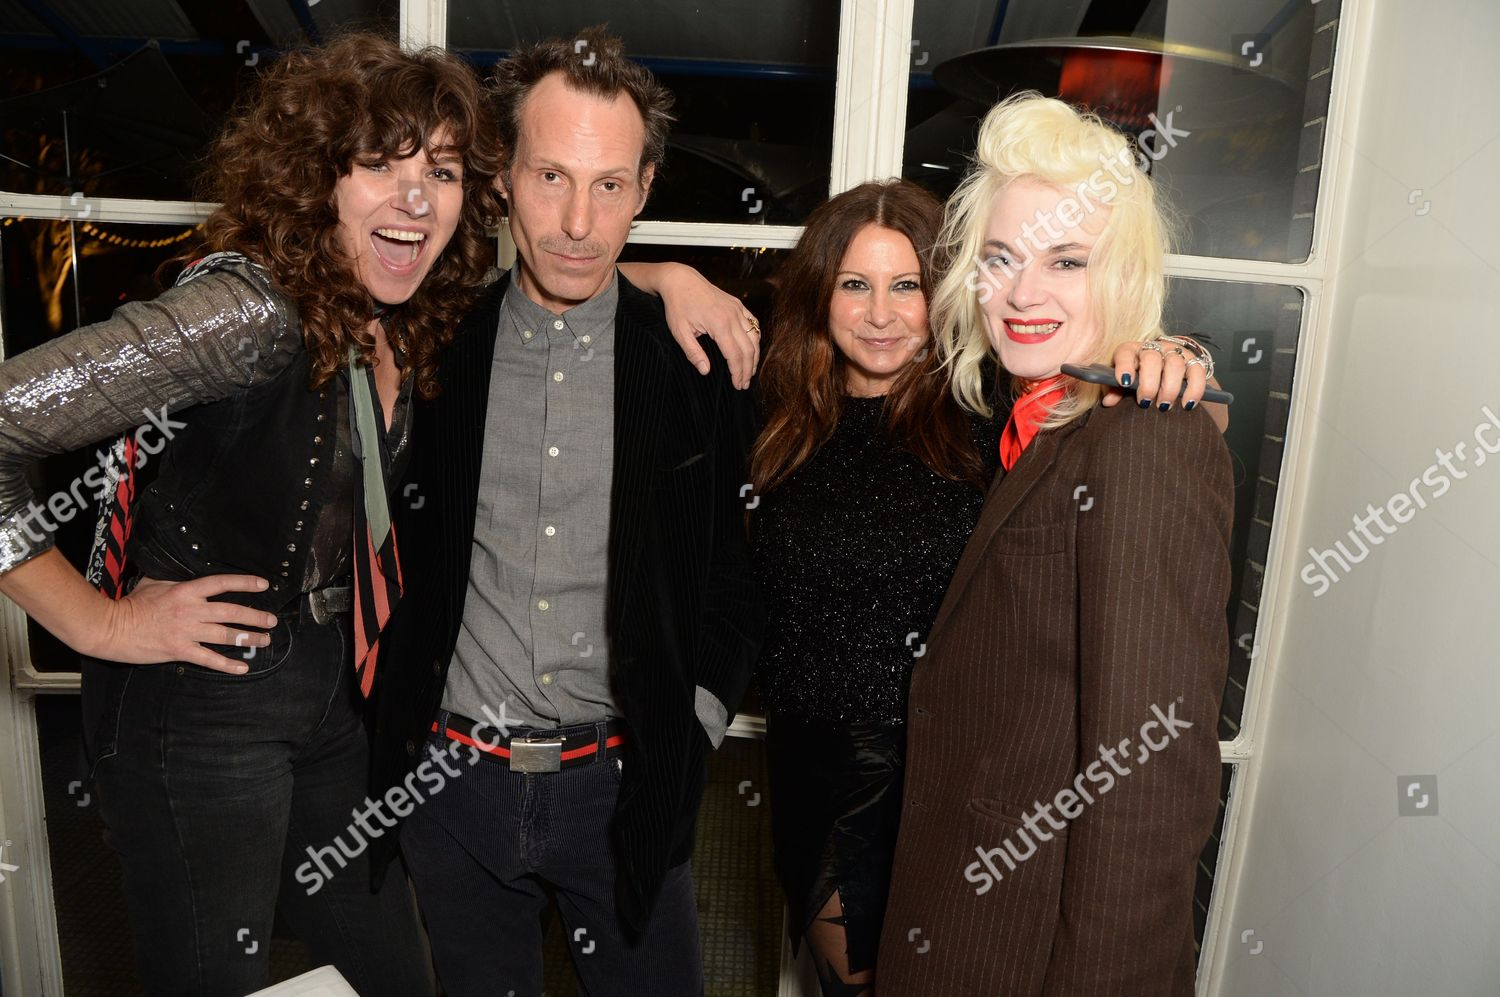 Stock photo of Dan Macmillan engagement party, The River Cafe, London, UK - 09 Oct 2016